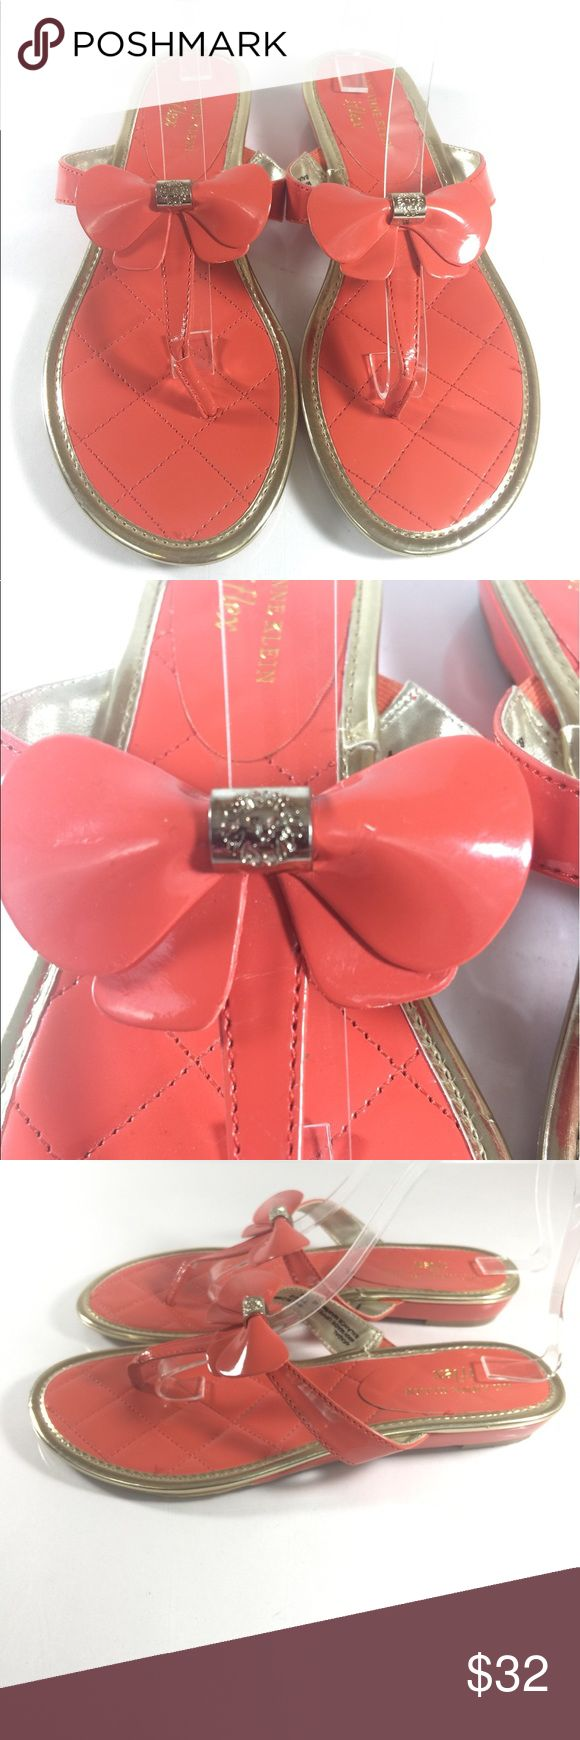 Anne Klein Akadal Orange Bow Flip Flops Size 7.5 Up for sale is this cute pair of Anne Klein iflex sandals. Coral orange with gold trim, bow detail with AK lionhead emblem! This pair is a must!  Women's Size US 7.5  CONDITION: Good Condition! Overall signs of minor wear. Please see photos Anne Klein Shoes Sandals